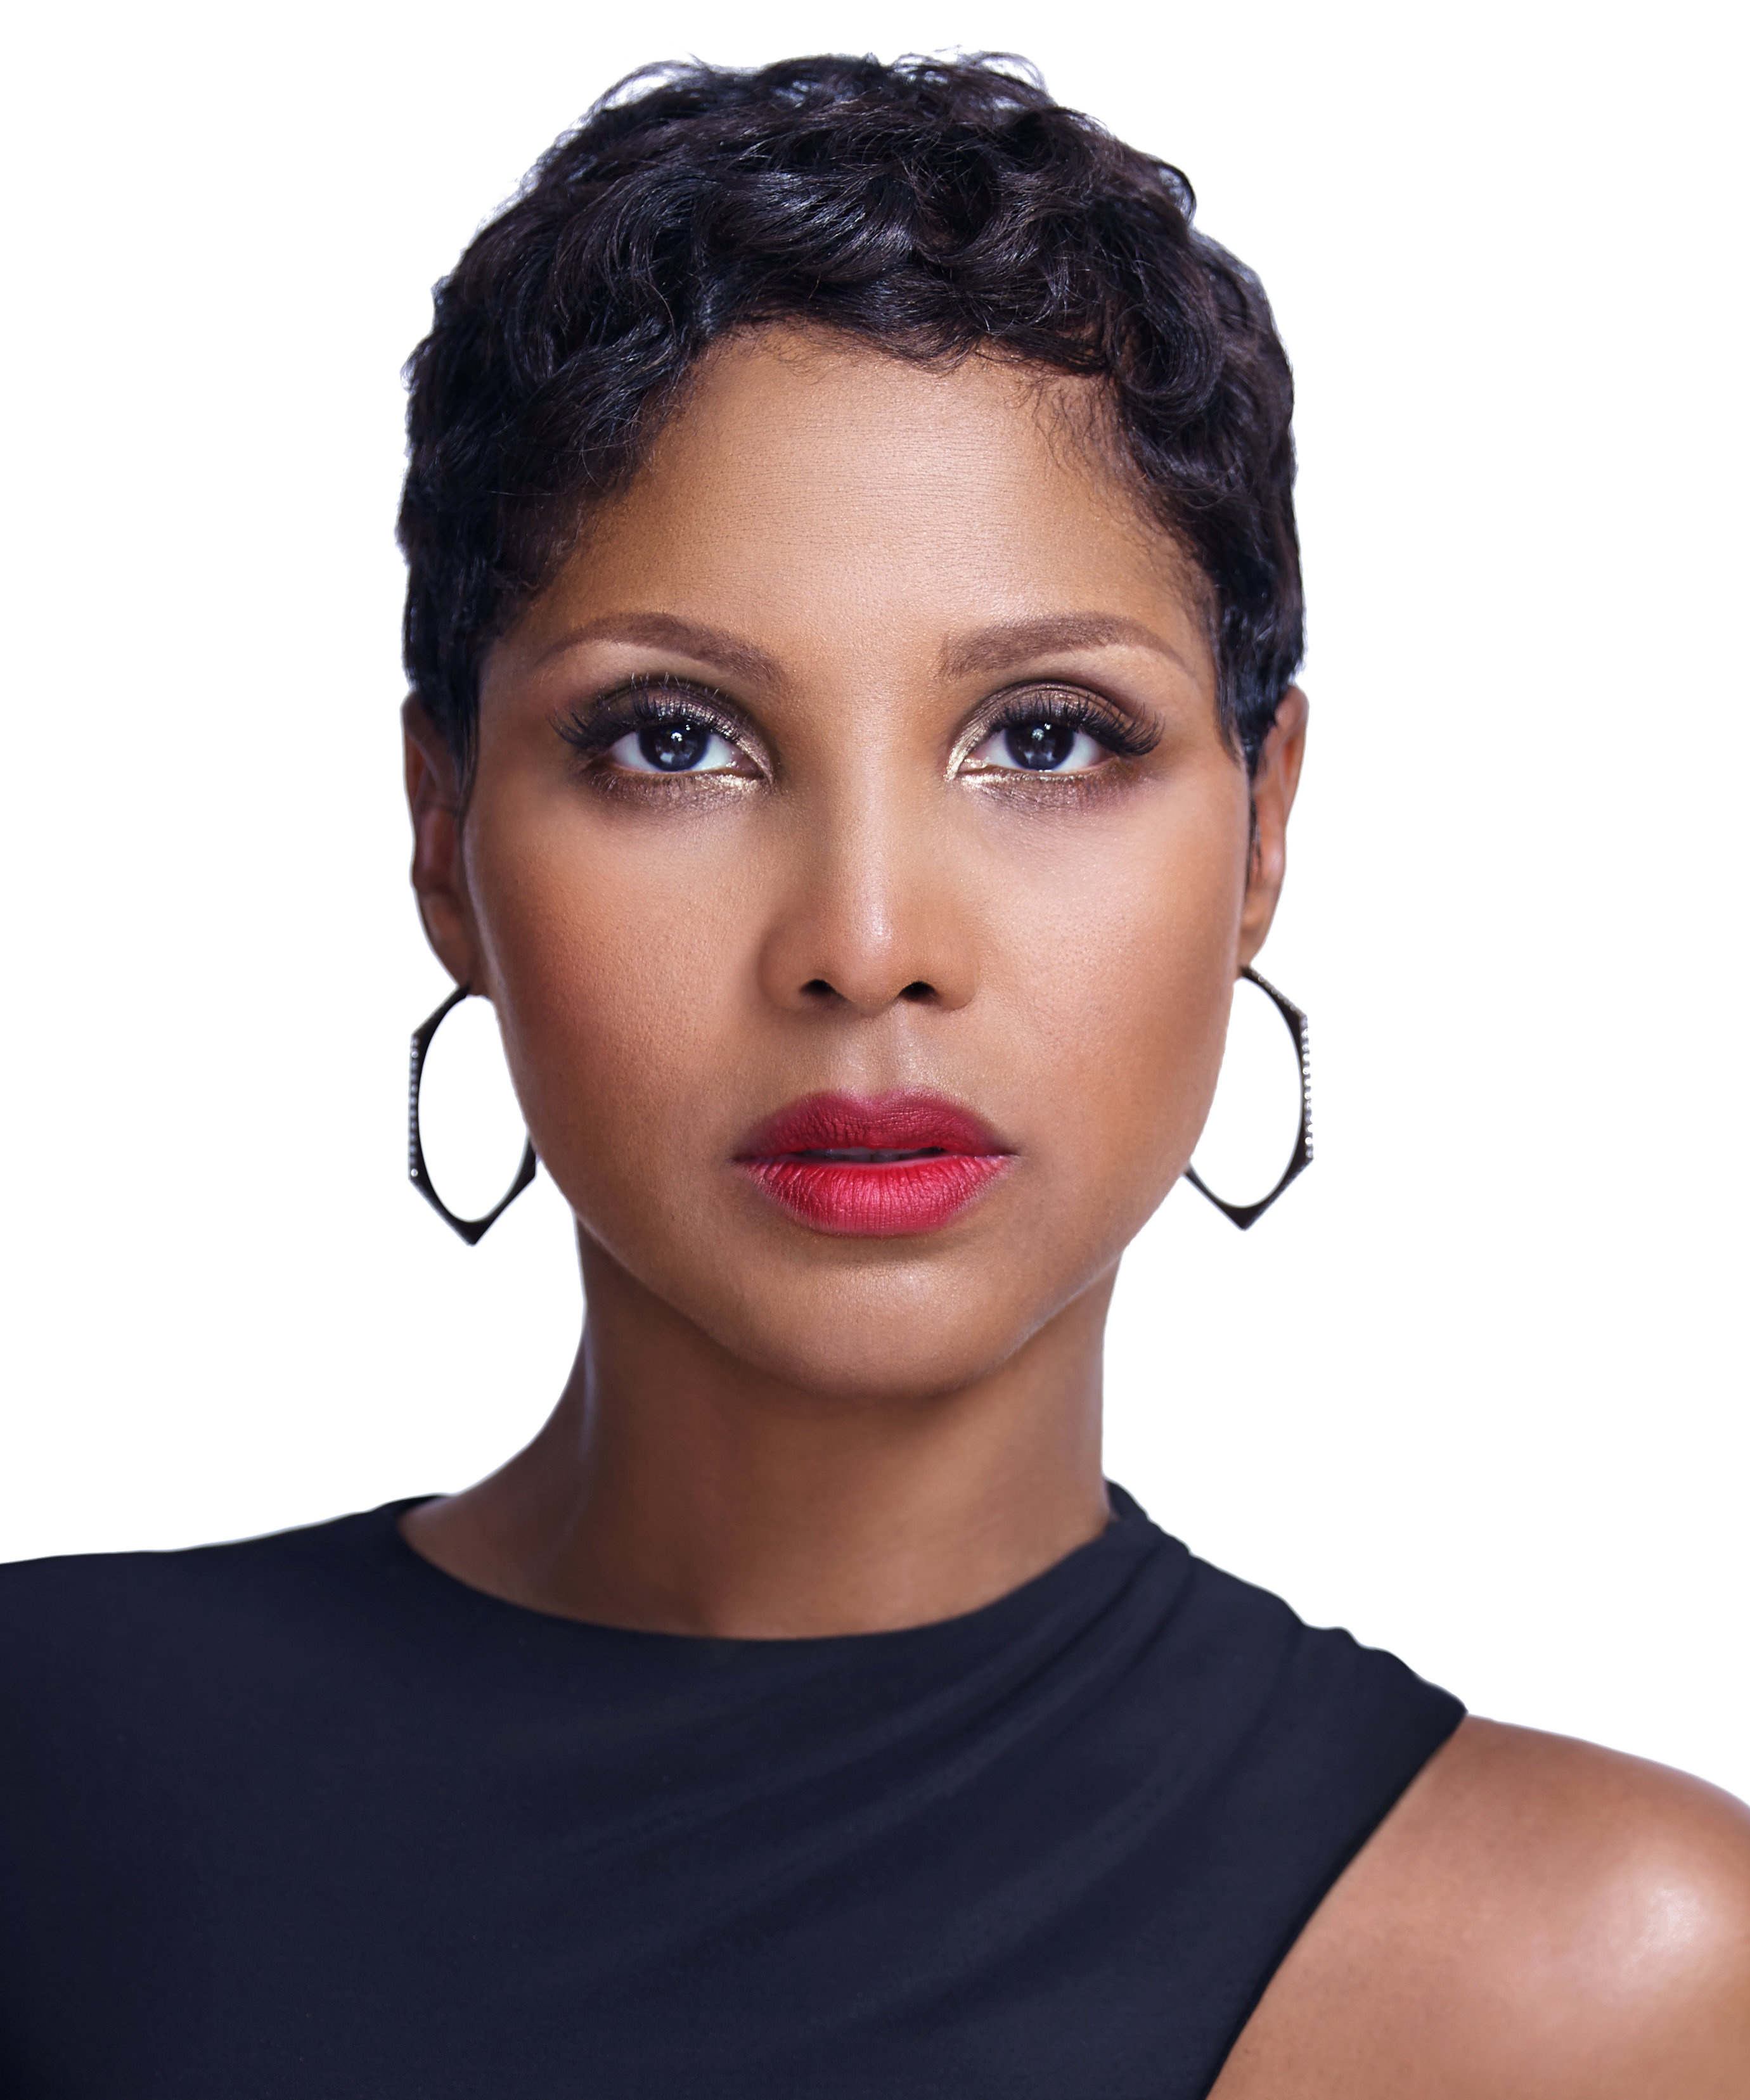 Surprising Toni Braxton Talks About The Tough Times And Her Lifetime Short Hairstyles For Black Women Fulllsitofus